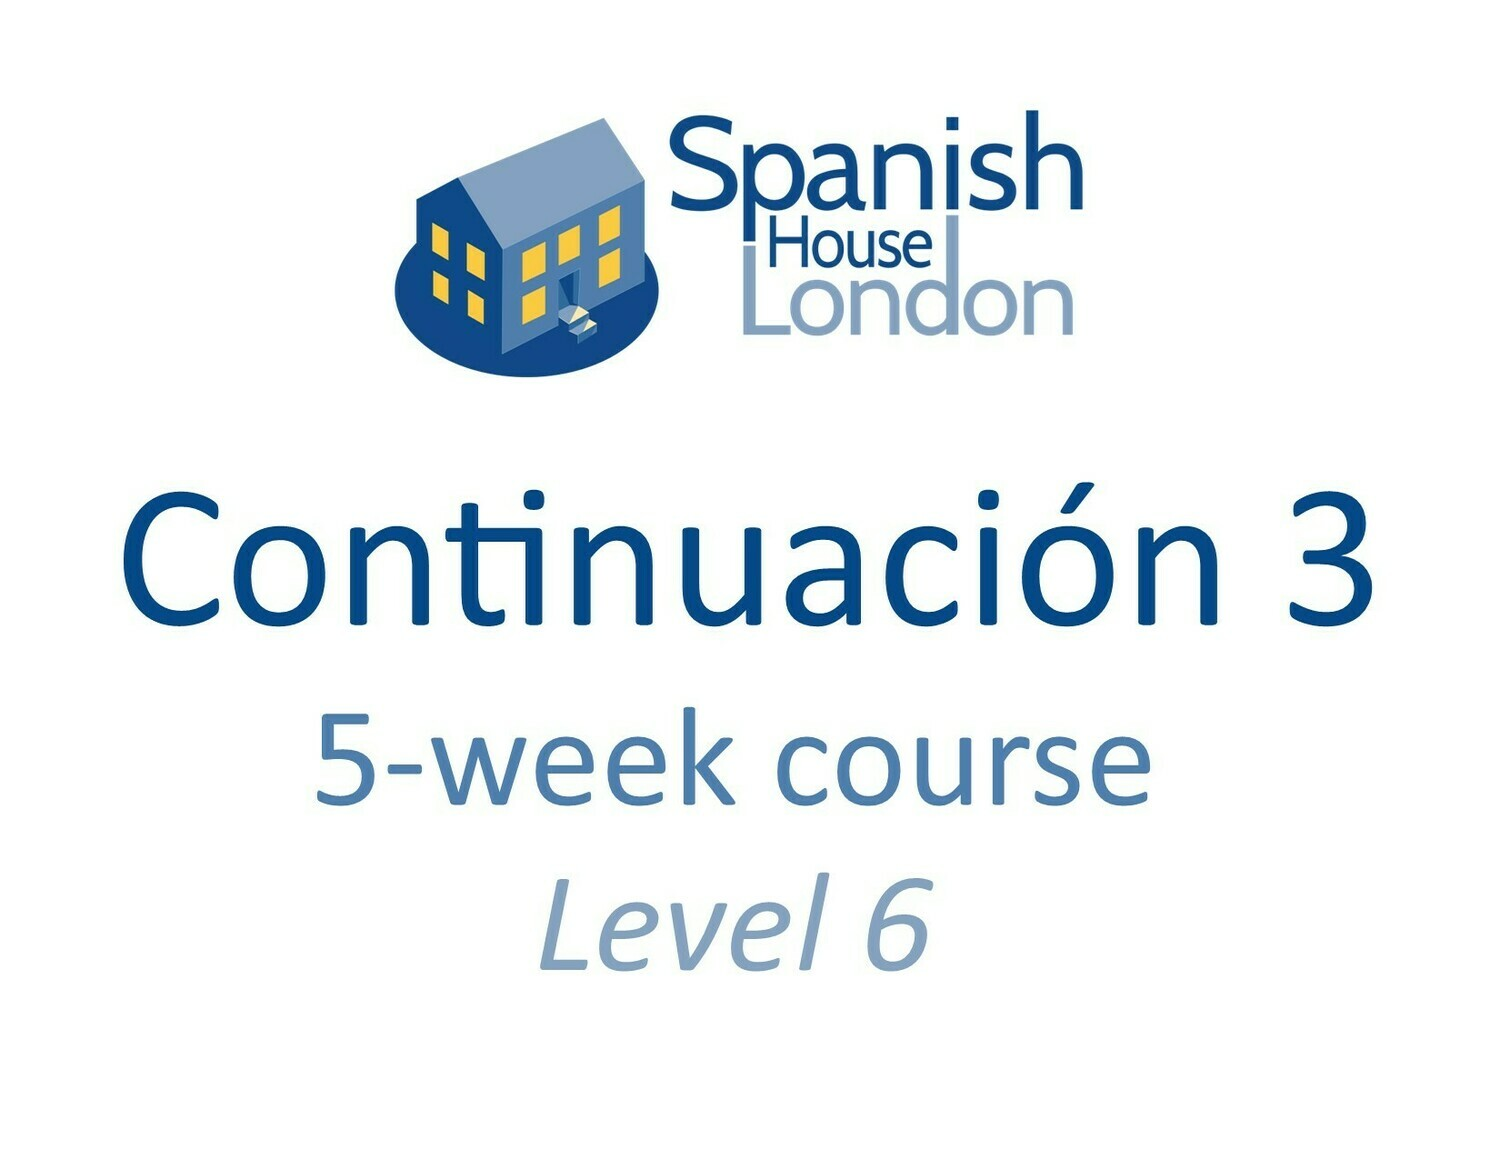 Continuacion 3 Five-Week Intensive Course starting on 4th August at 6pm